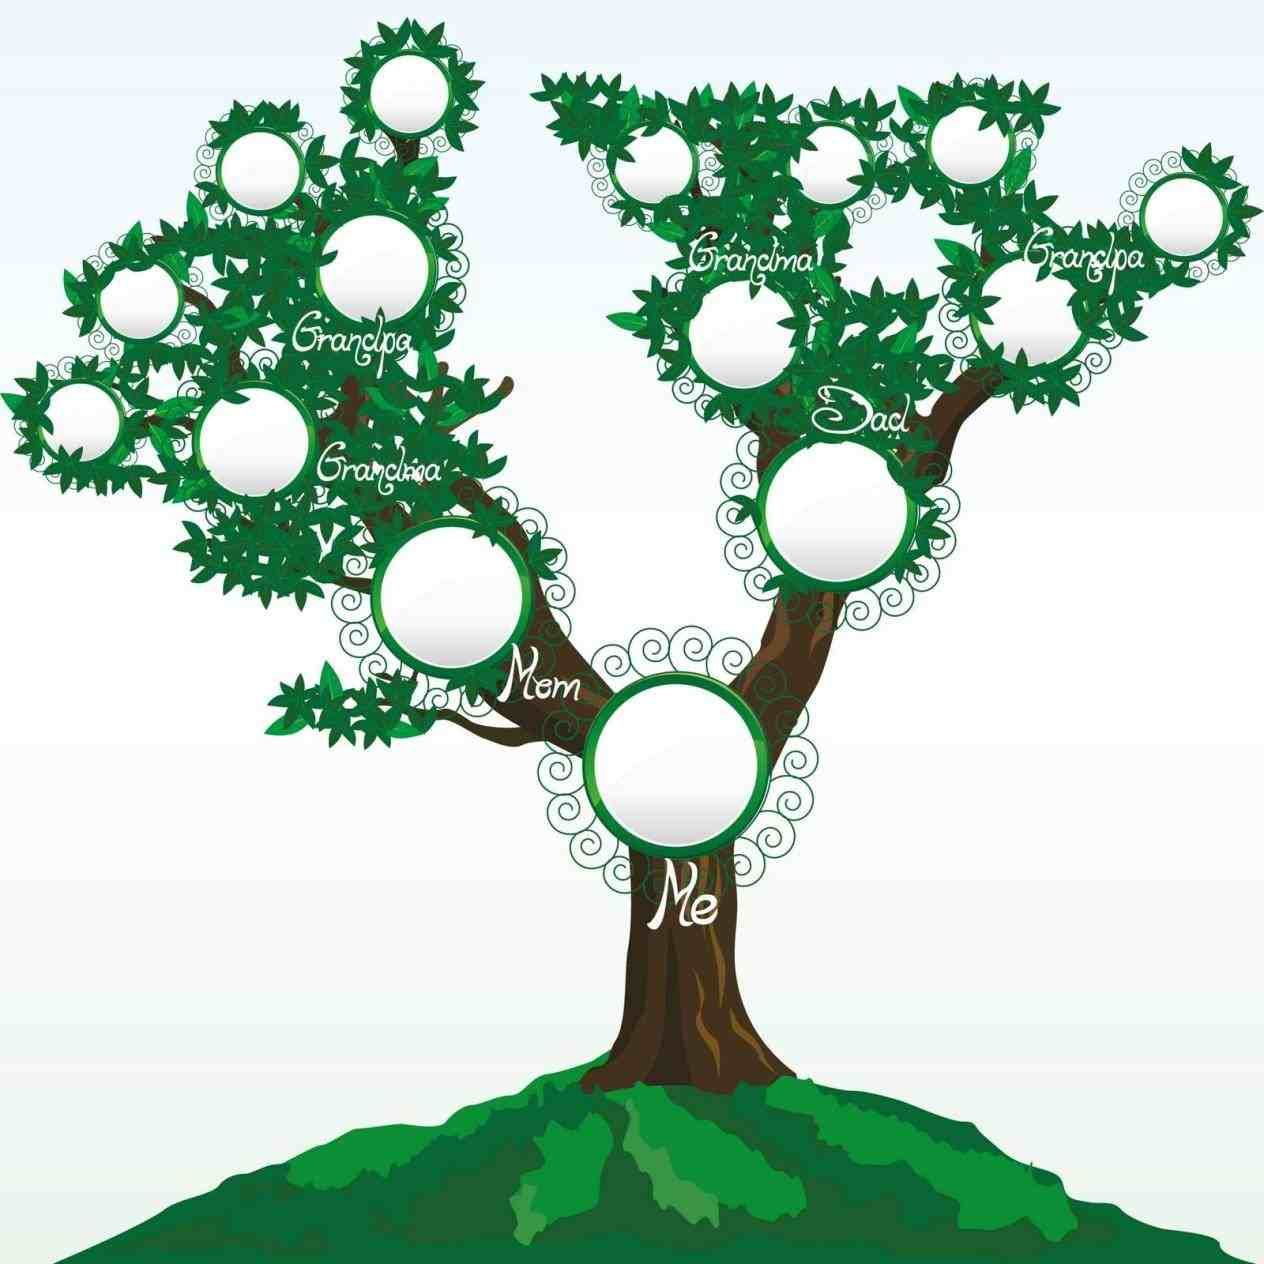 Family Tree Template For Kids In Spanish Ngorongub Clipart